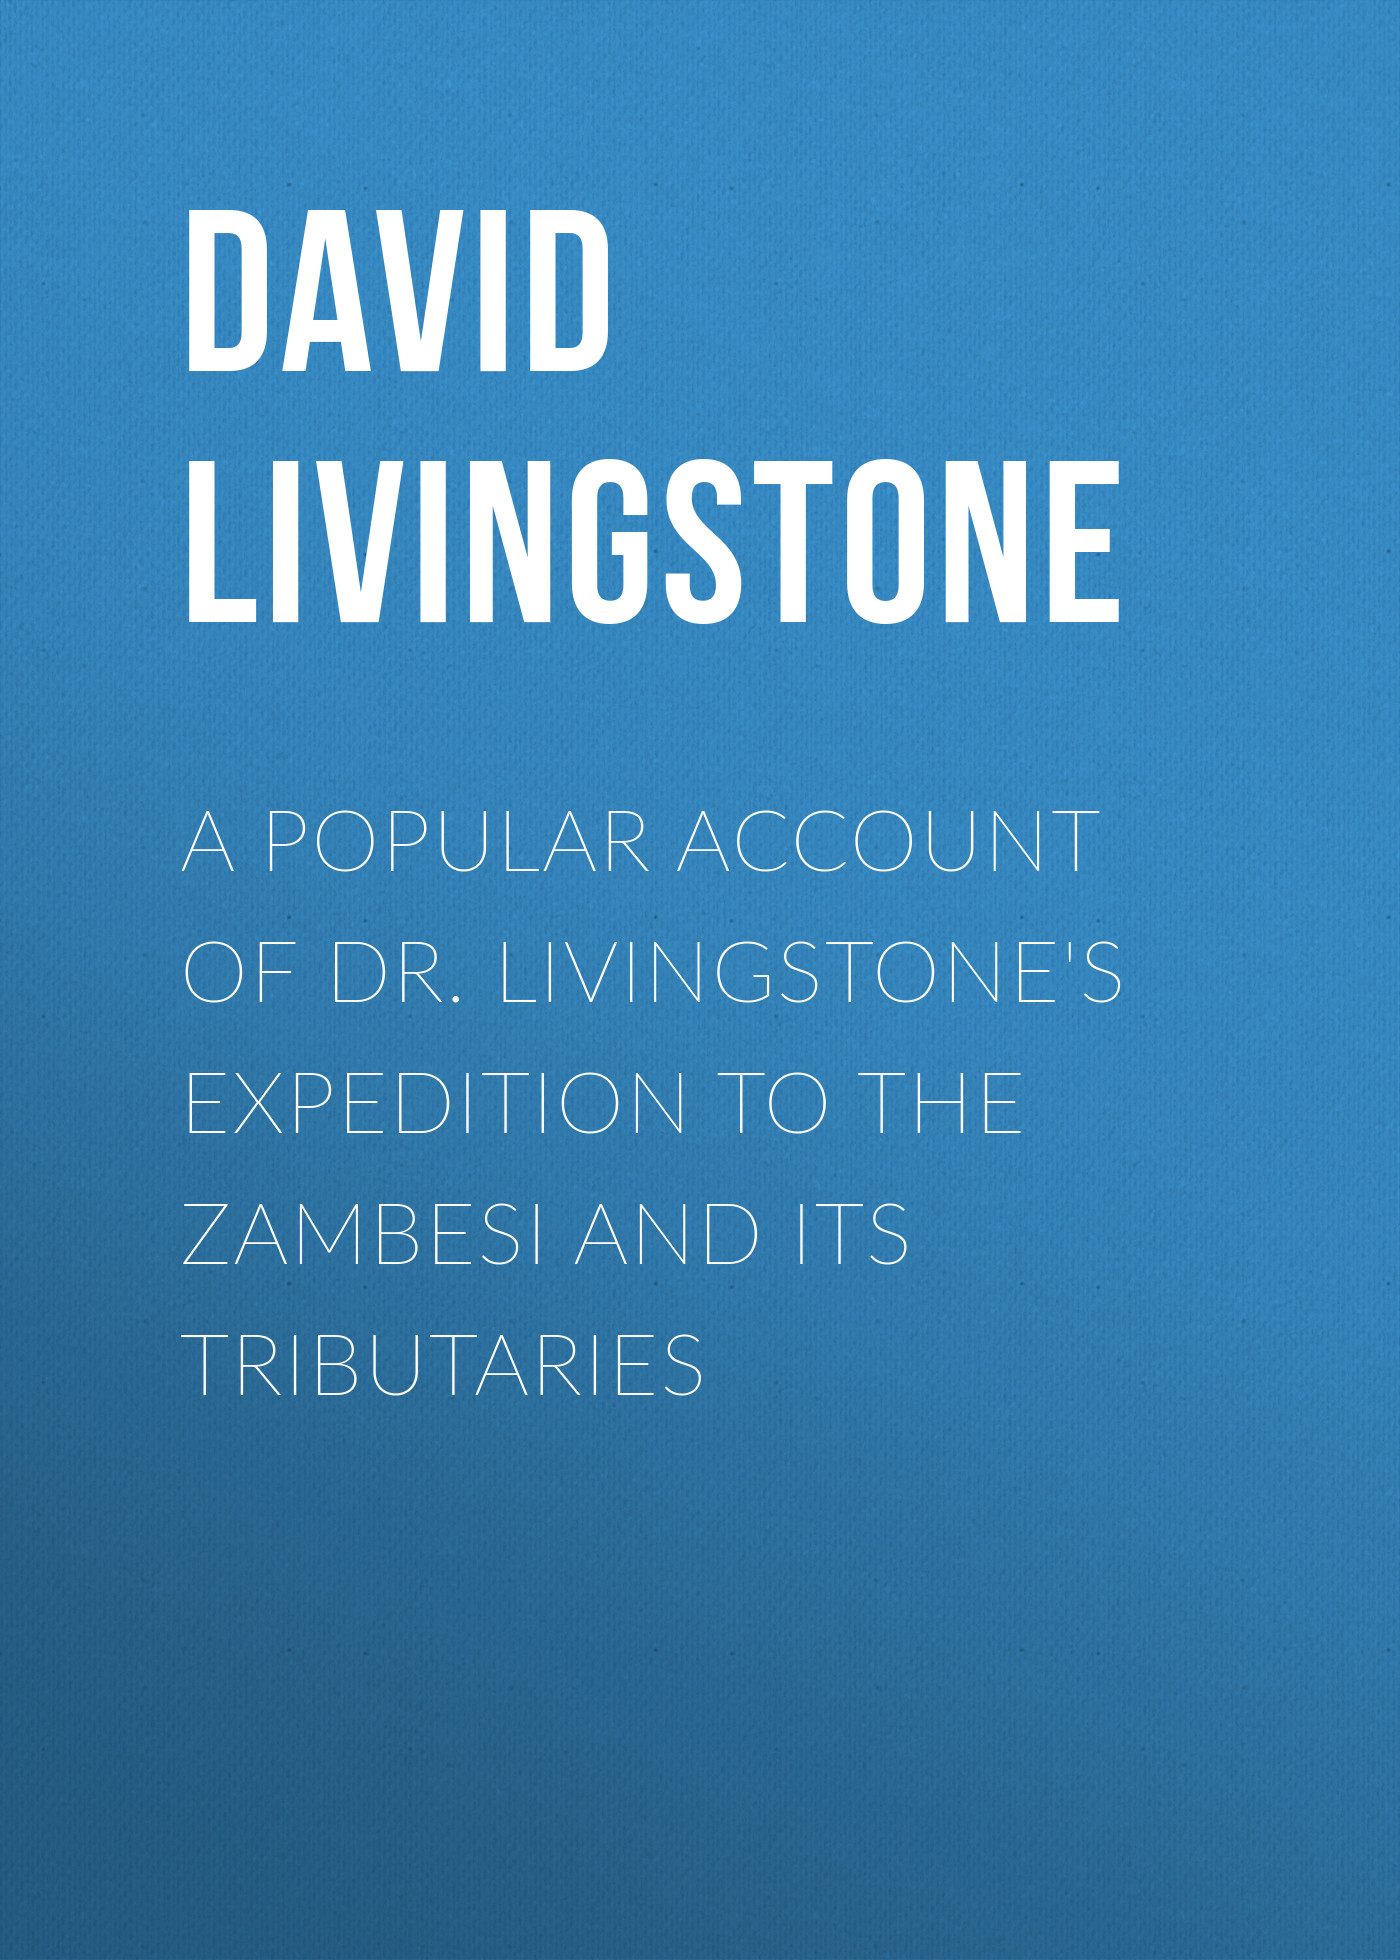 David Livingstone A Popular Account of Dr. Livingstone's Expedition to the Zambesi and Its Tributaries кабели межблочные аудио tributaries 8am 8 0m 8am 080b